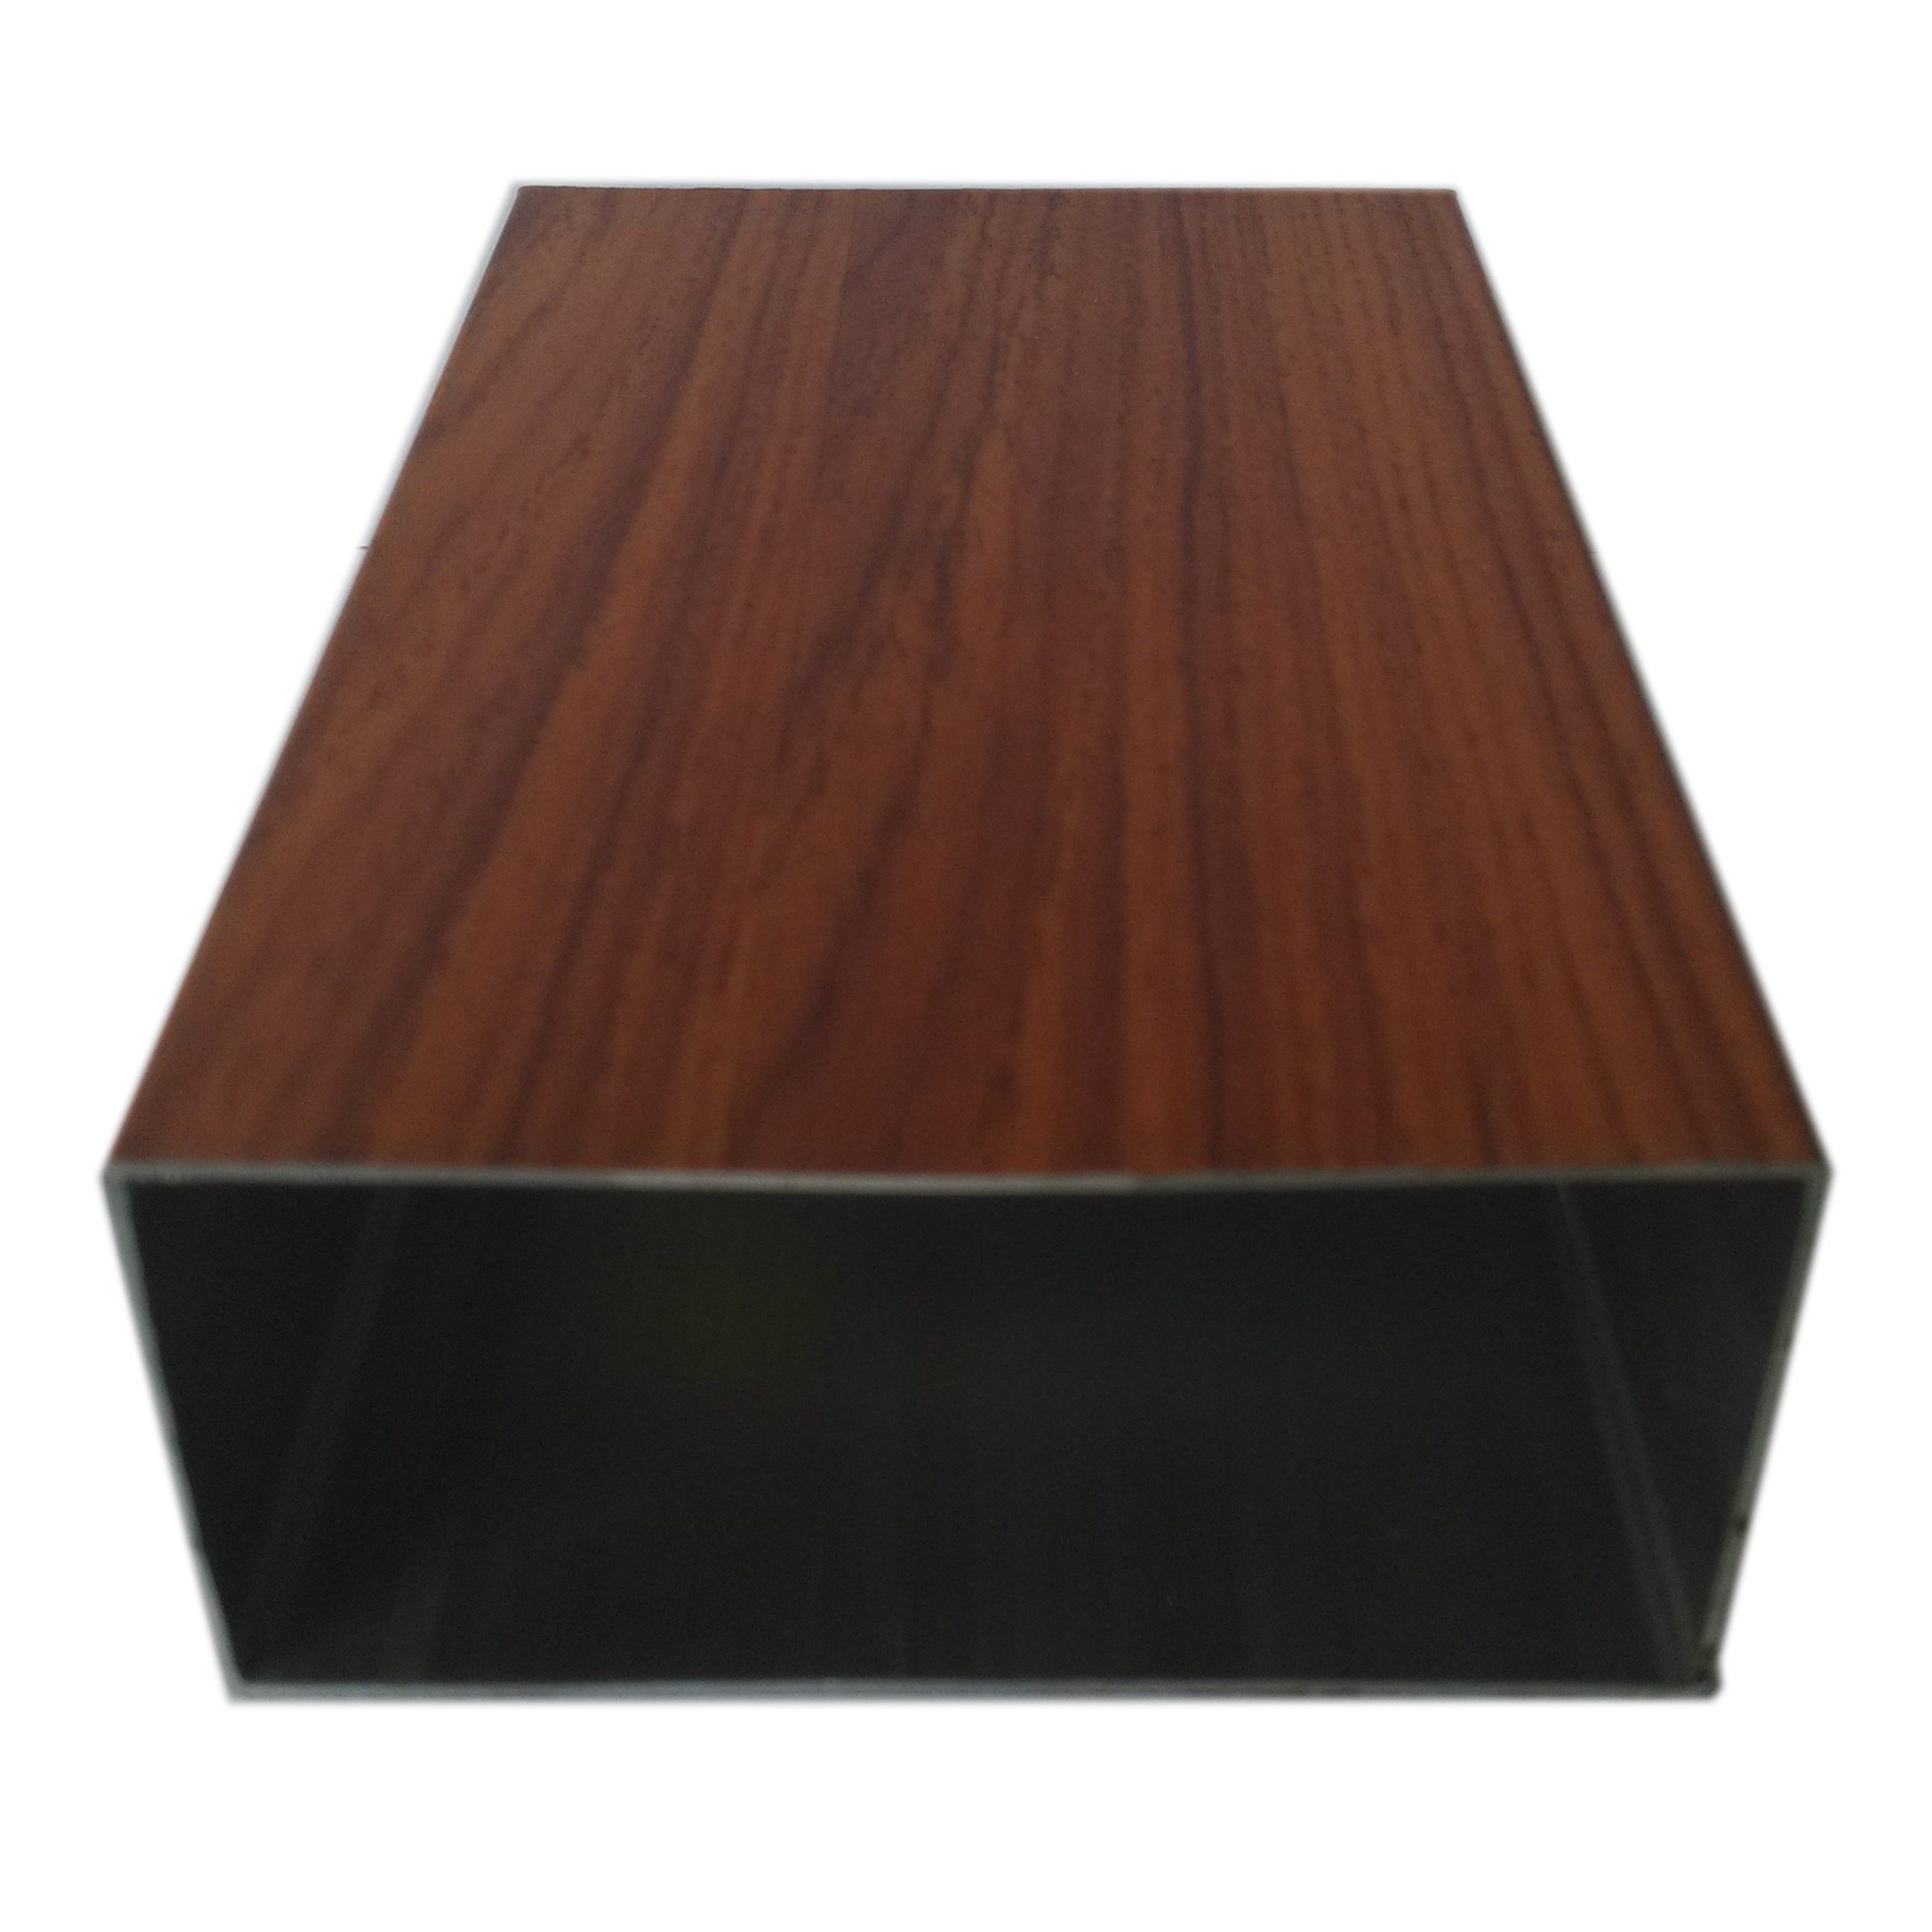 China Wood Grain Trsanfer Profile Aluminium Extrusion Profile for Window Door Industry